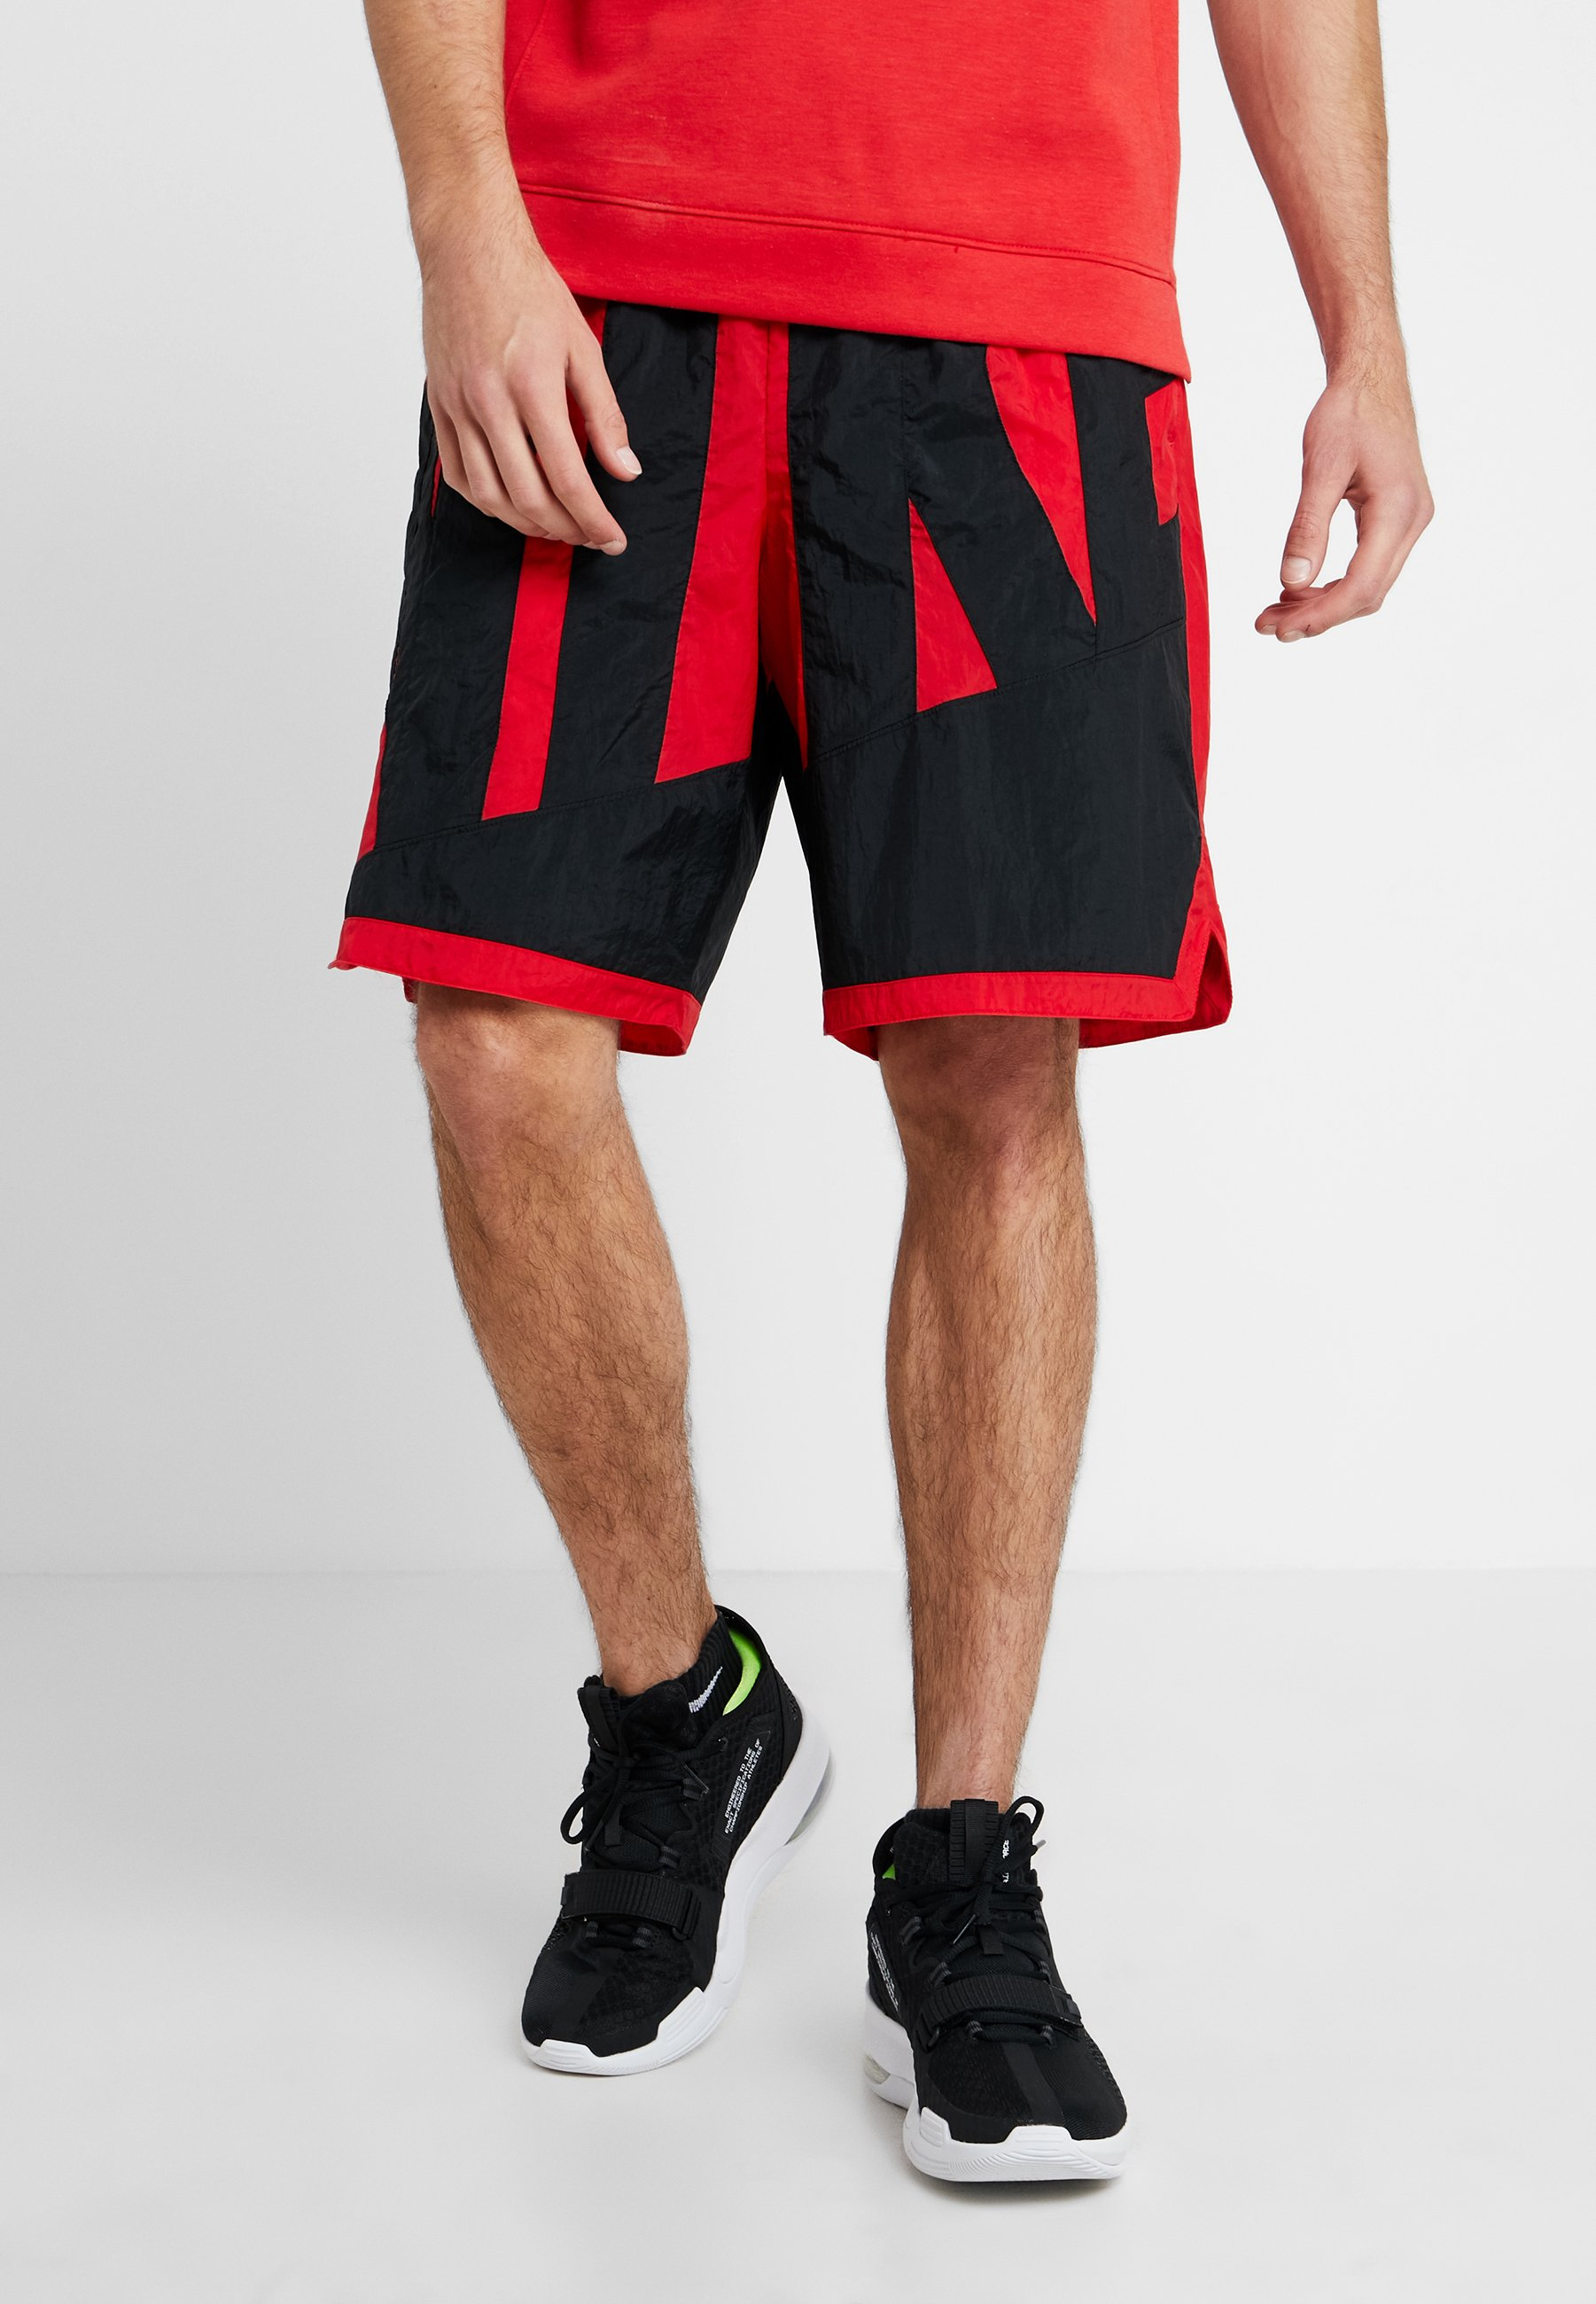 Dry Performance ThrowbackDe University black Short Nike Red Sport zSMUpV